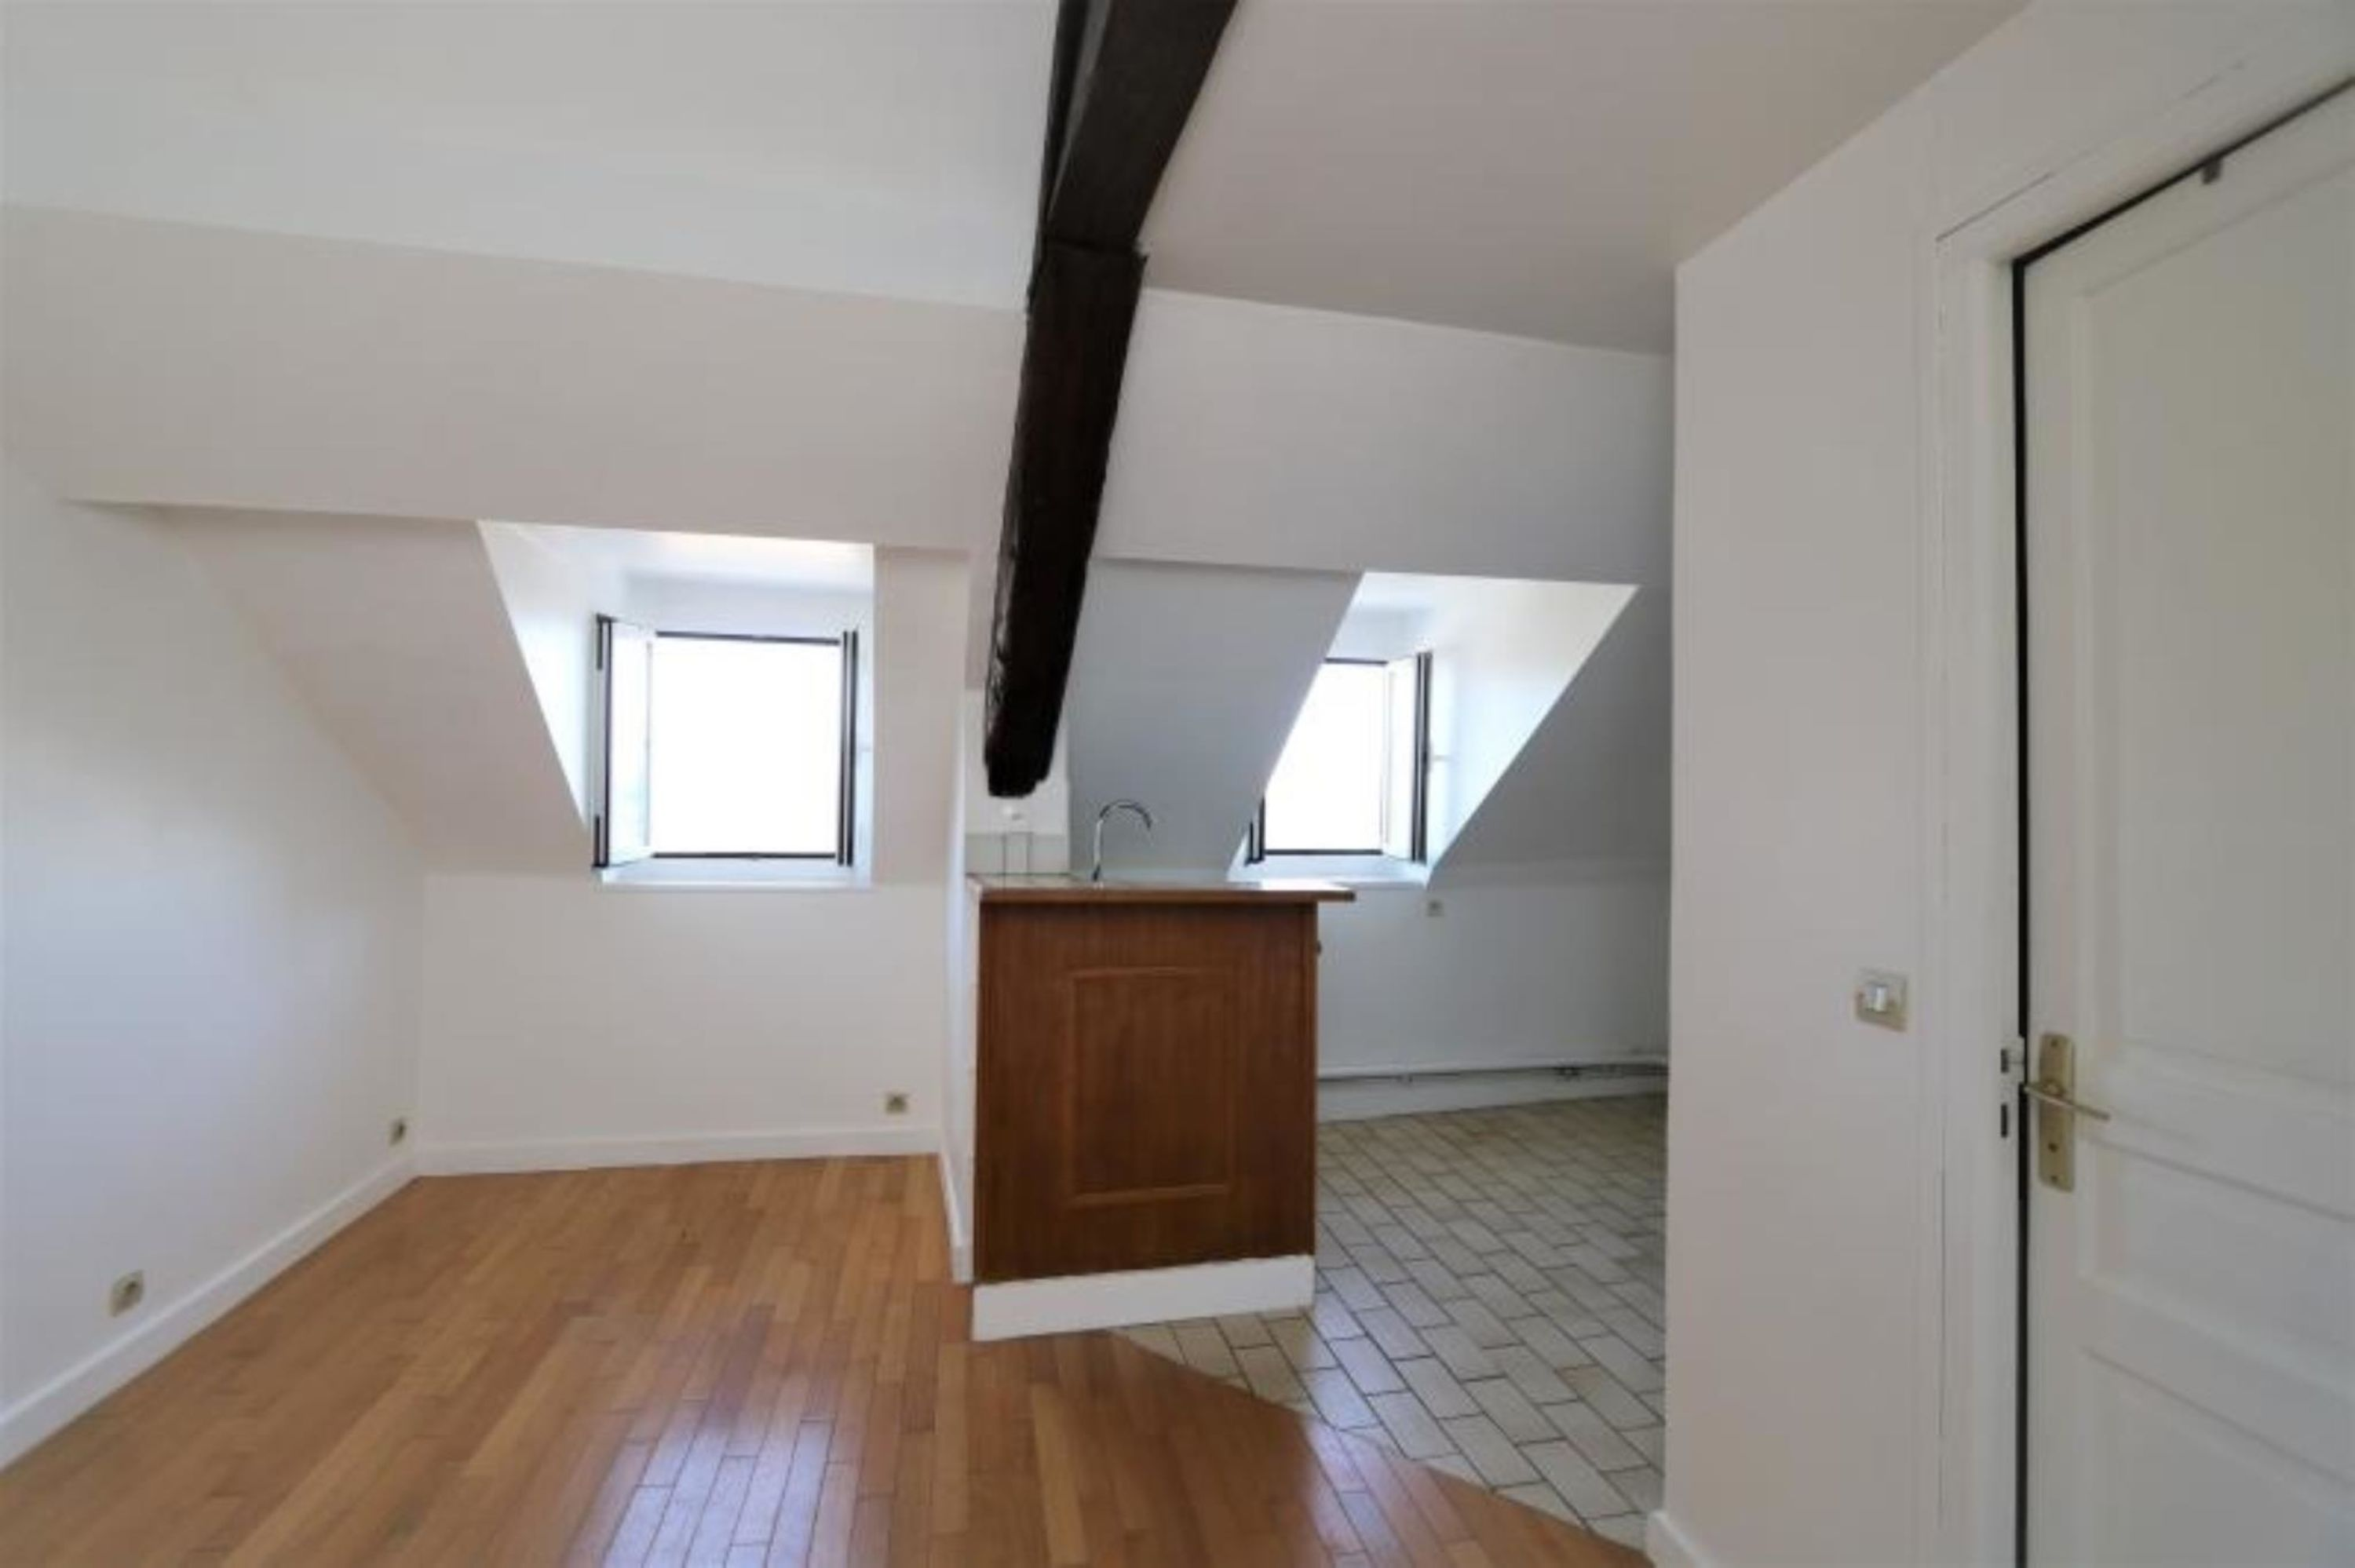 agence immobilière sevres 92 le chesnay 78 achat vente location appartement maison immobilier LMHT ANF UZNWARYI